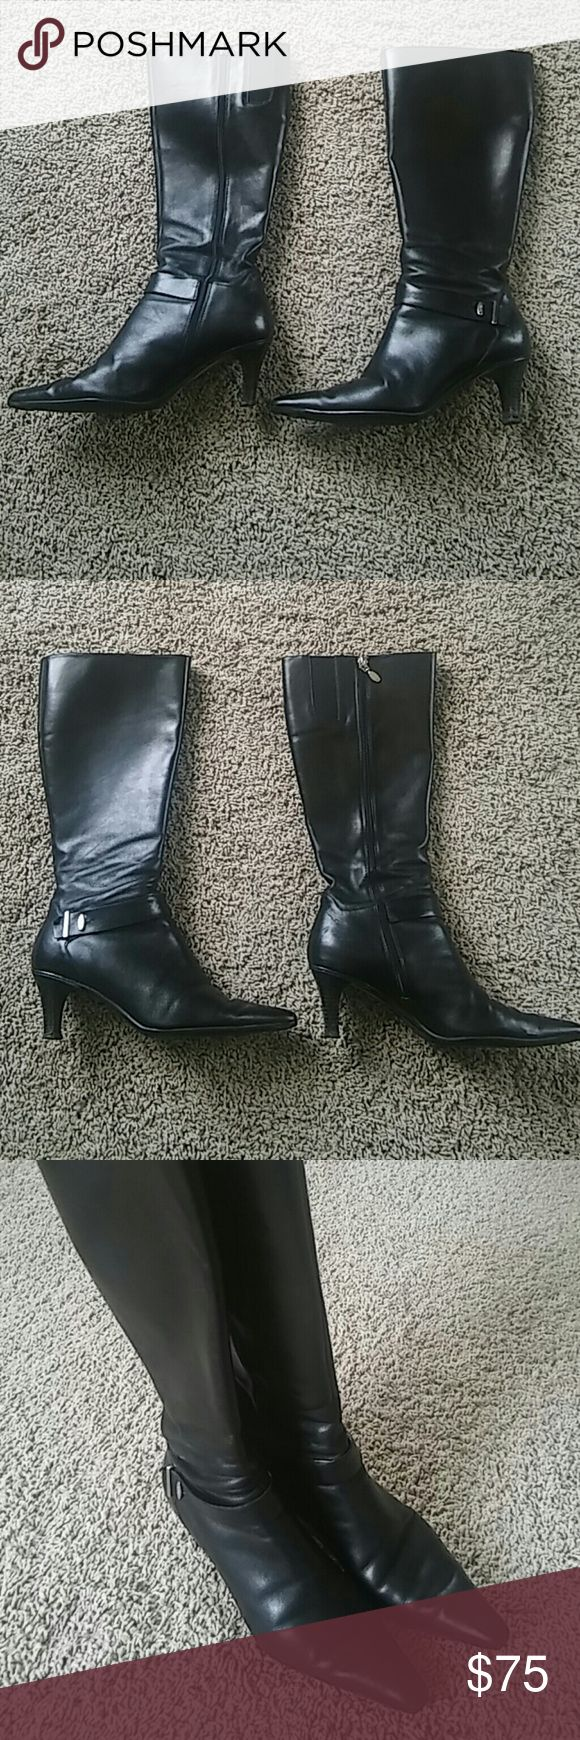 Circa Joan & David Size 8 Black Leather Boots Circa Joan & David size 8 black leather boots. In great used condition with a 2.5 inch heel. Perfect black boots that can go from work to a night out! Check out my other listings & bundle to save or make me an offer! Joan & David Shoes Heeled Boots